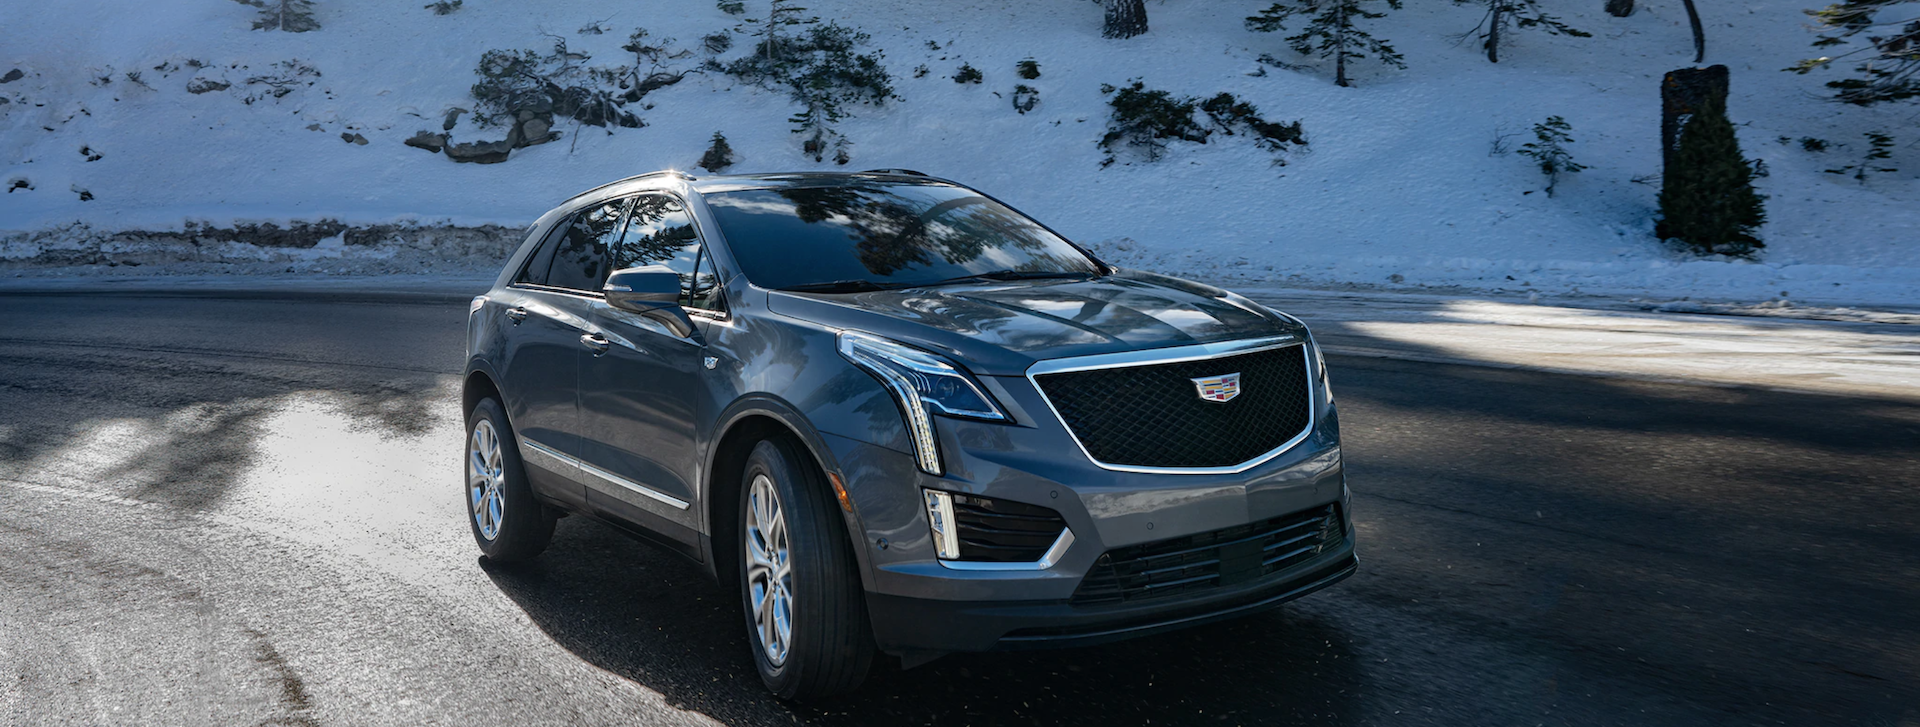 2021 XT5 Available at Team Sewell Cadillac Dealership in Odessa, TX